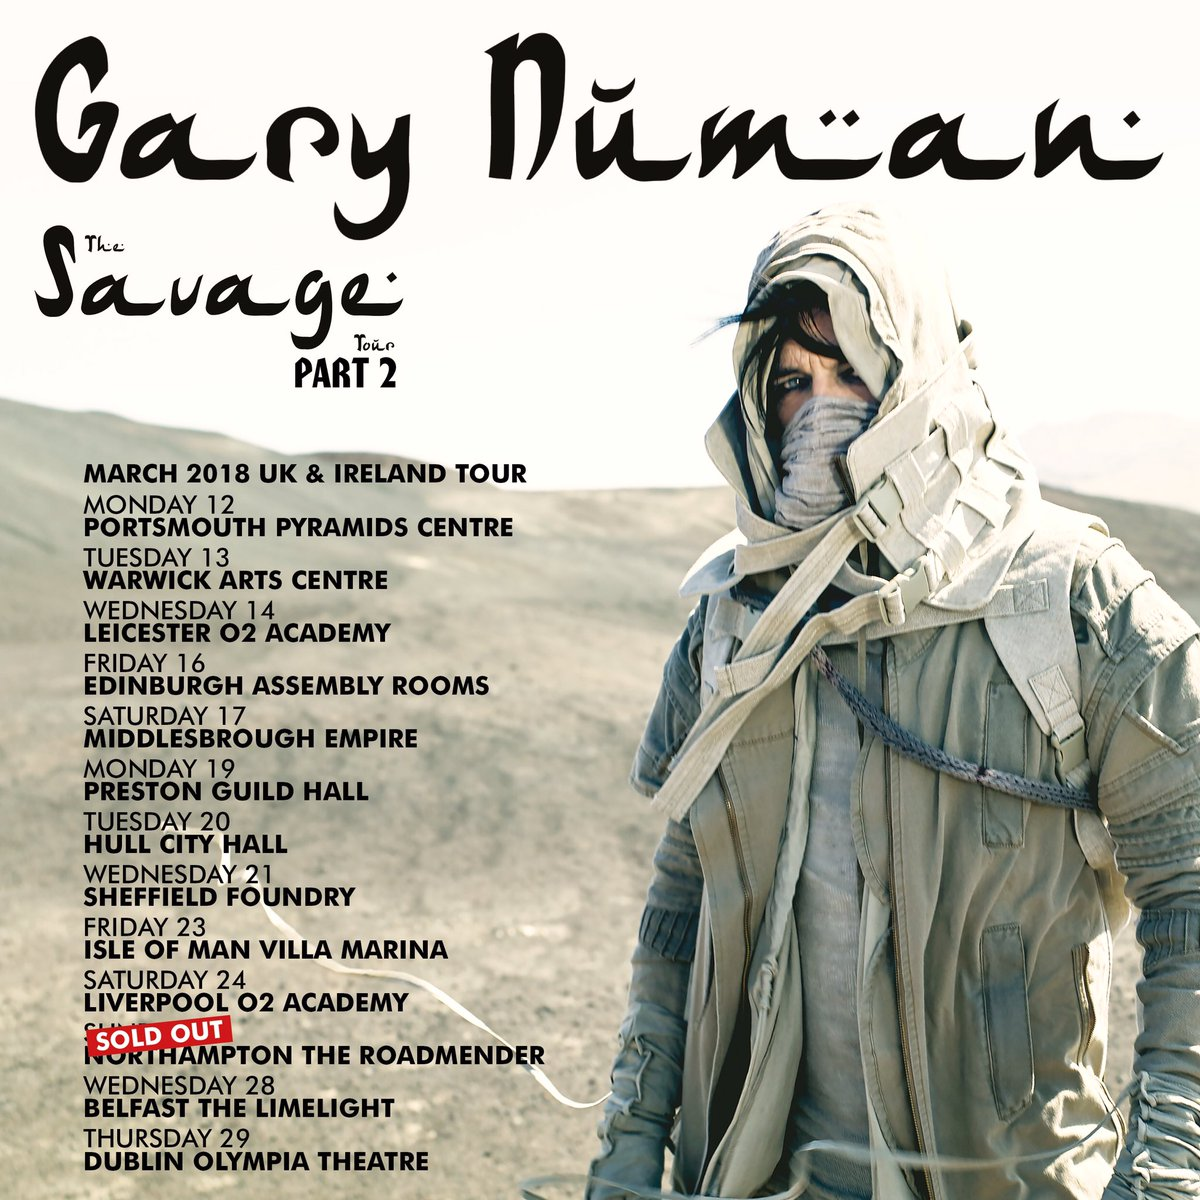 Gary numan on twitter portsmouth meet greet has sold out and the gary numan on twitter portsmouth meet greet has sold out and the feb 24 rehearsal has one place left ukireland savage tour 2018 m4hsunfo